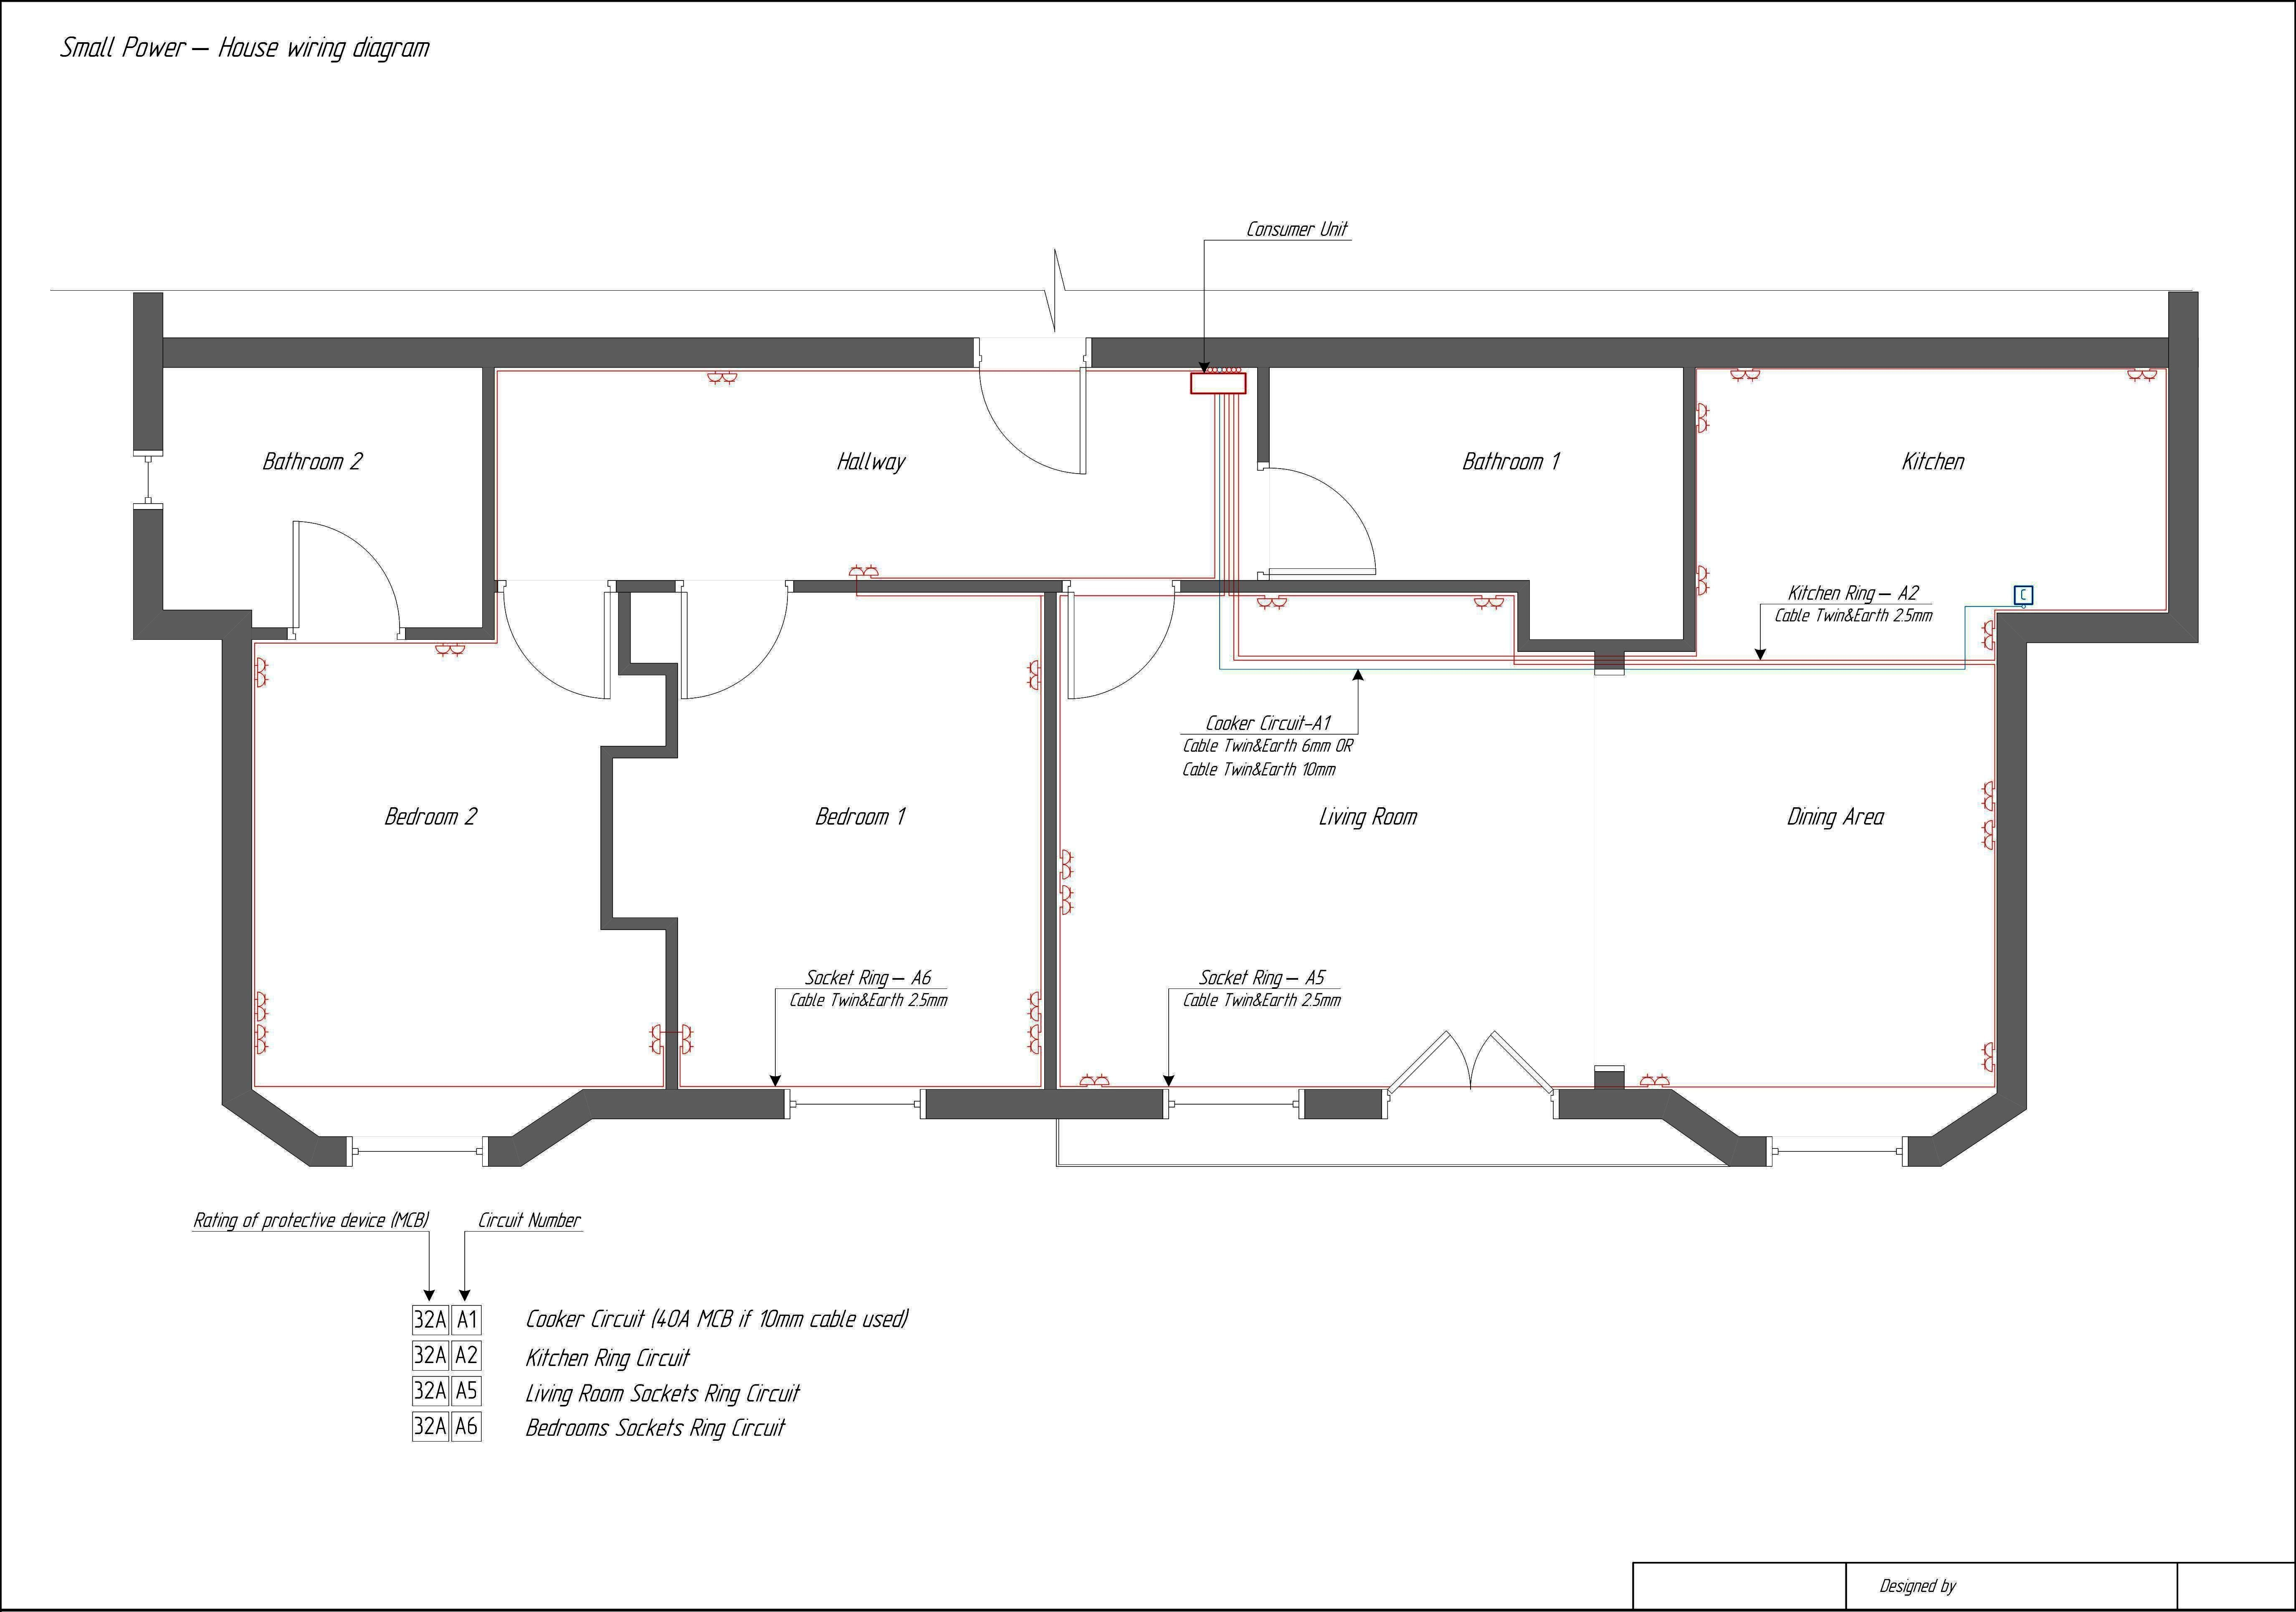 13 Good Wiring Diagram For House Outlets Design With